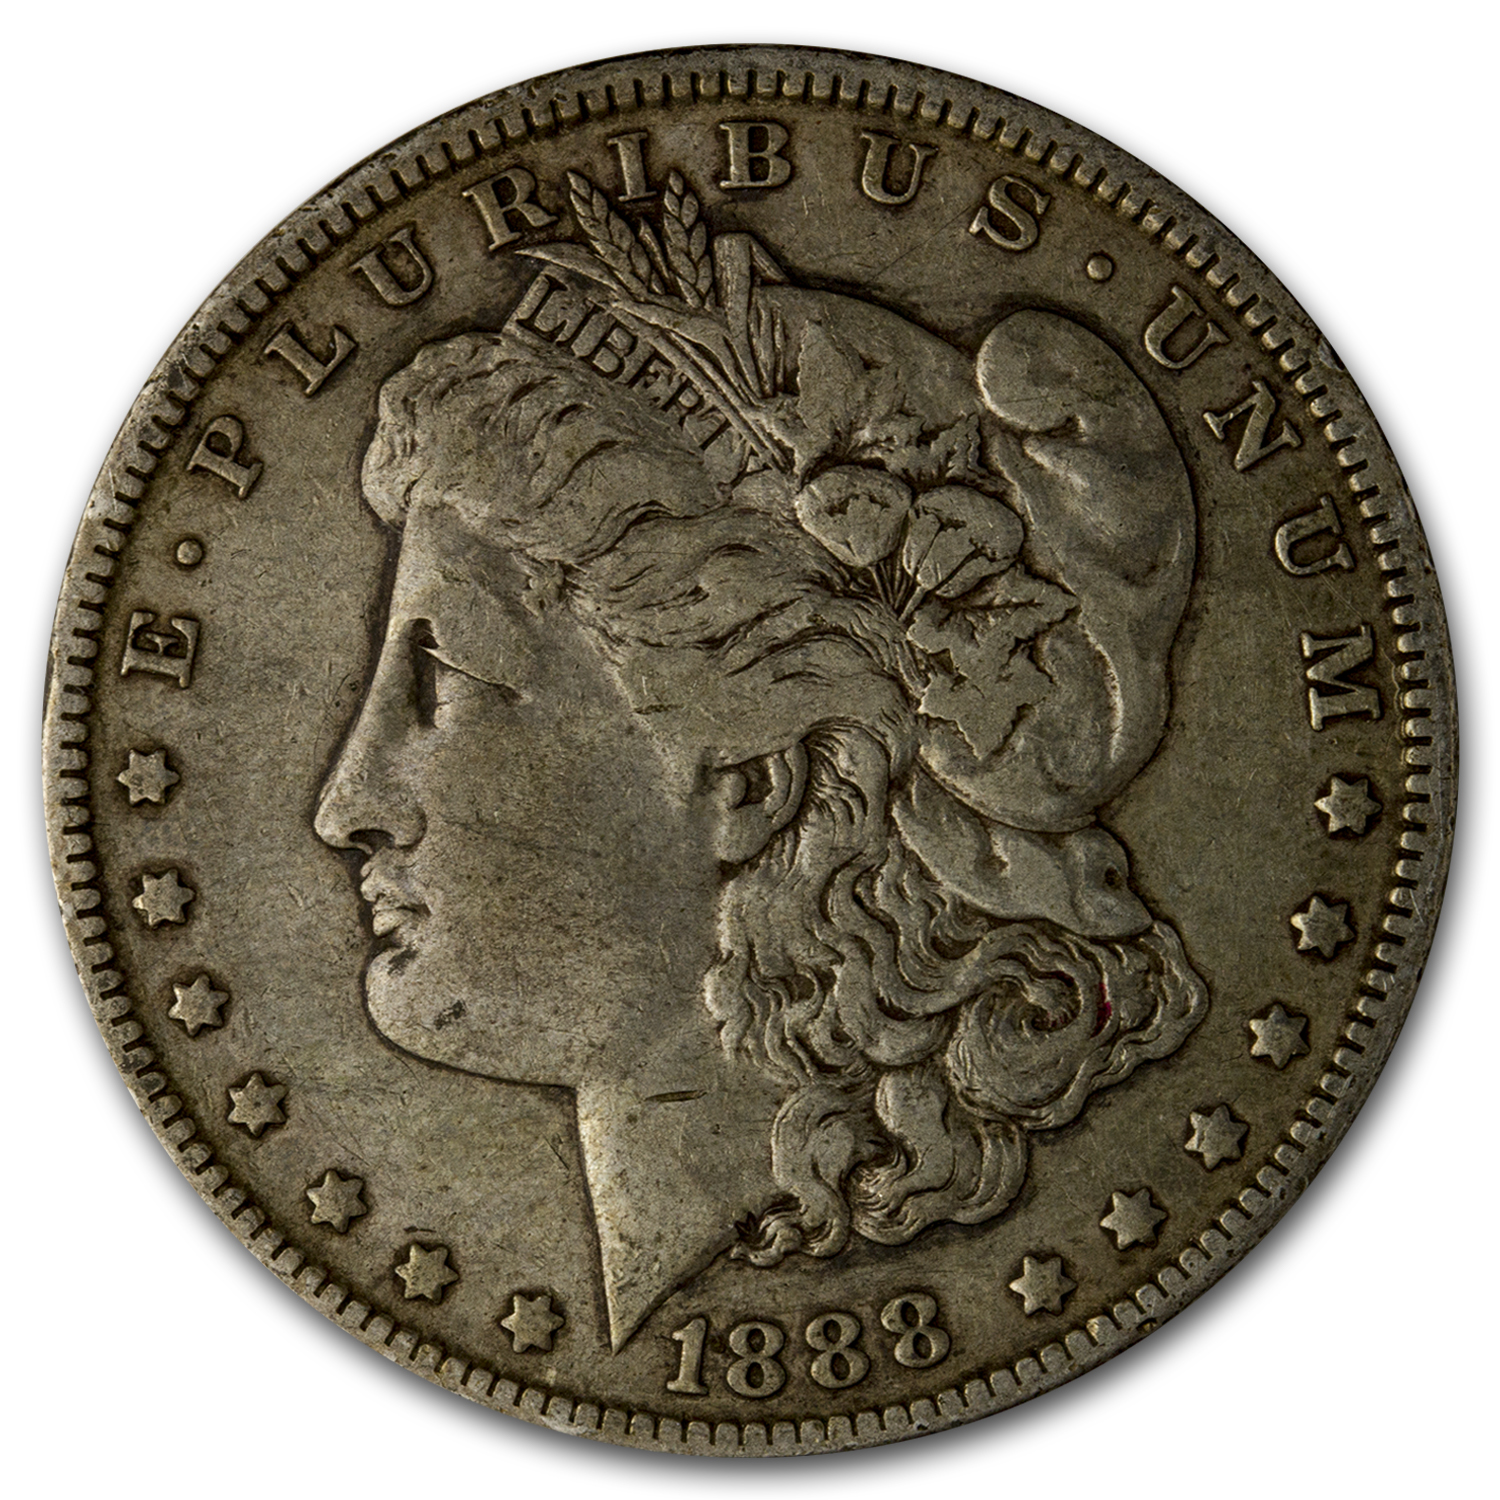 1888-O Morgan Dollar VG-VF (VAM-4, Hot Lips, Doubled Die)